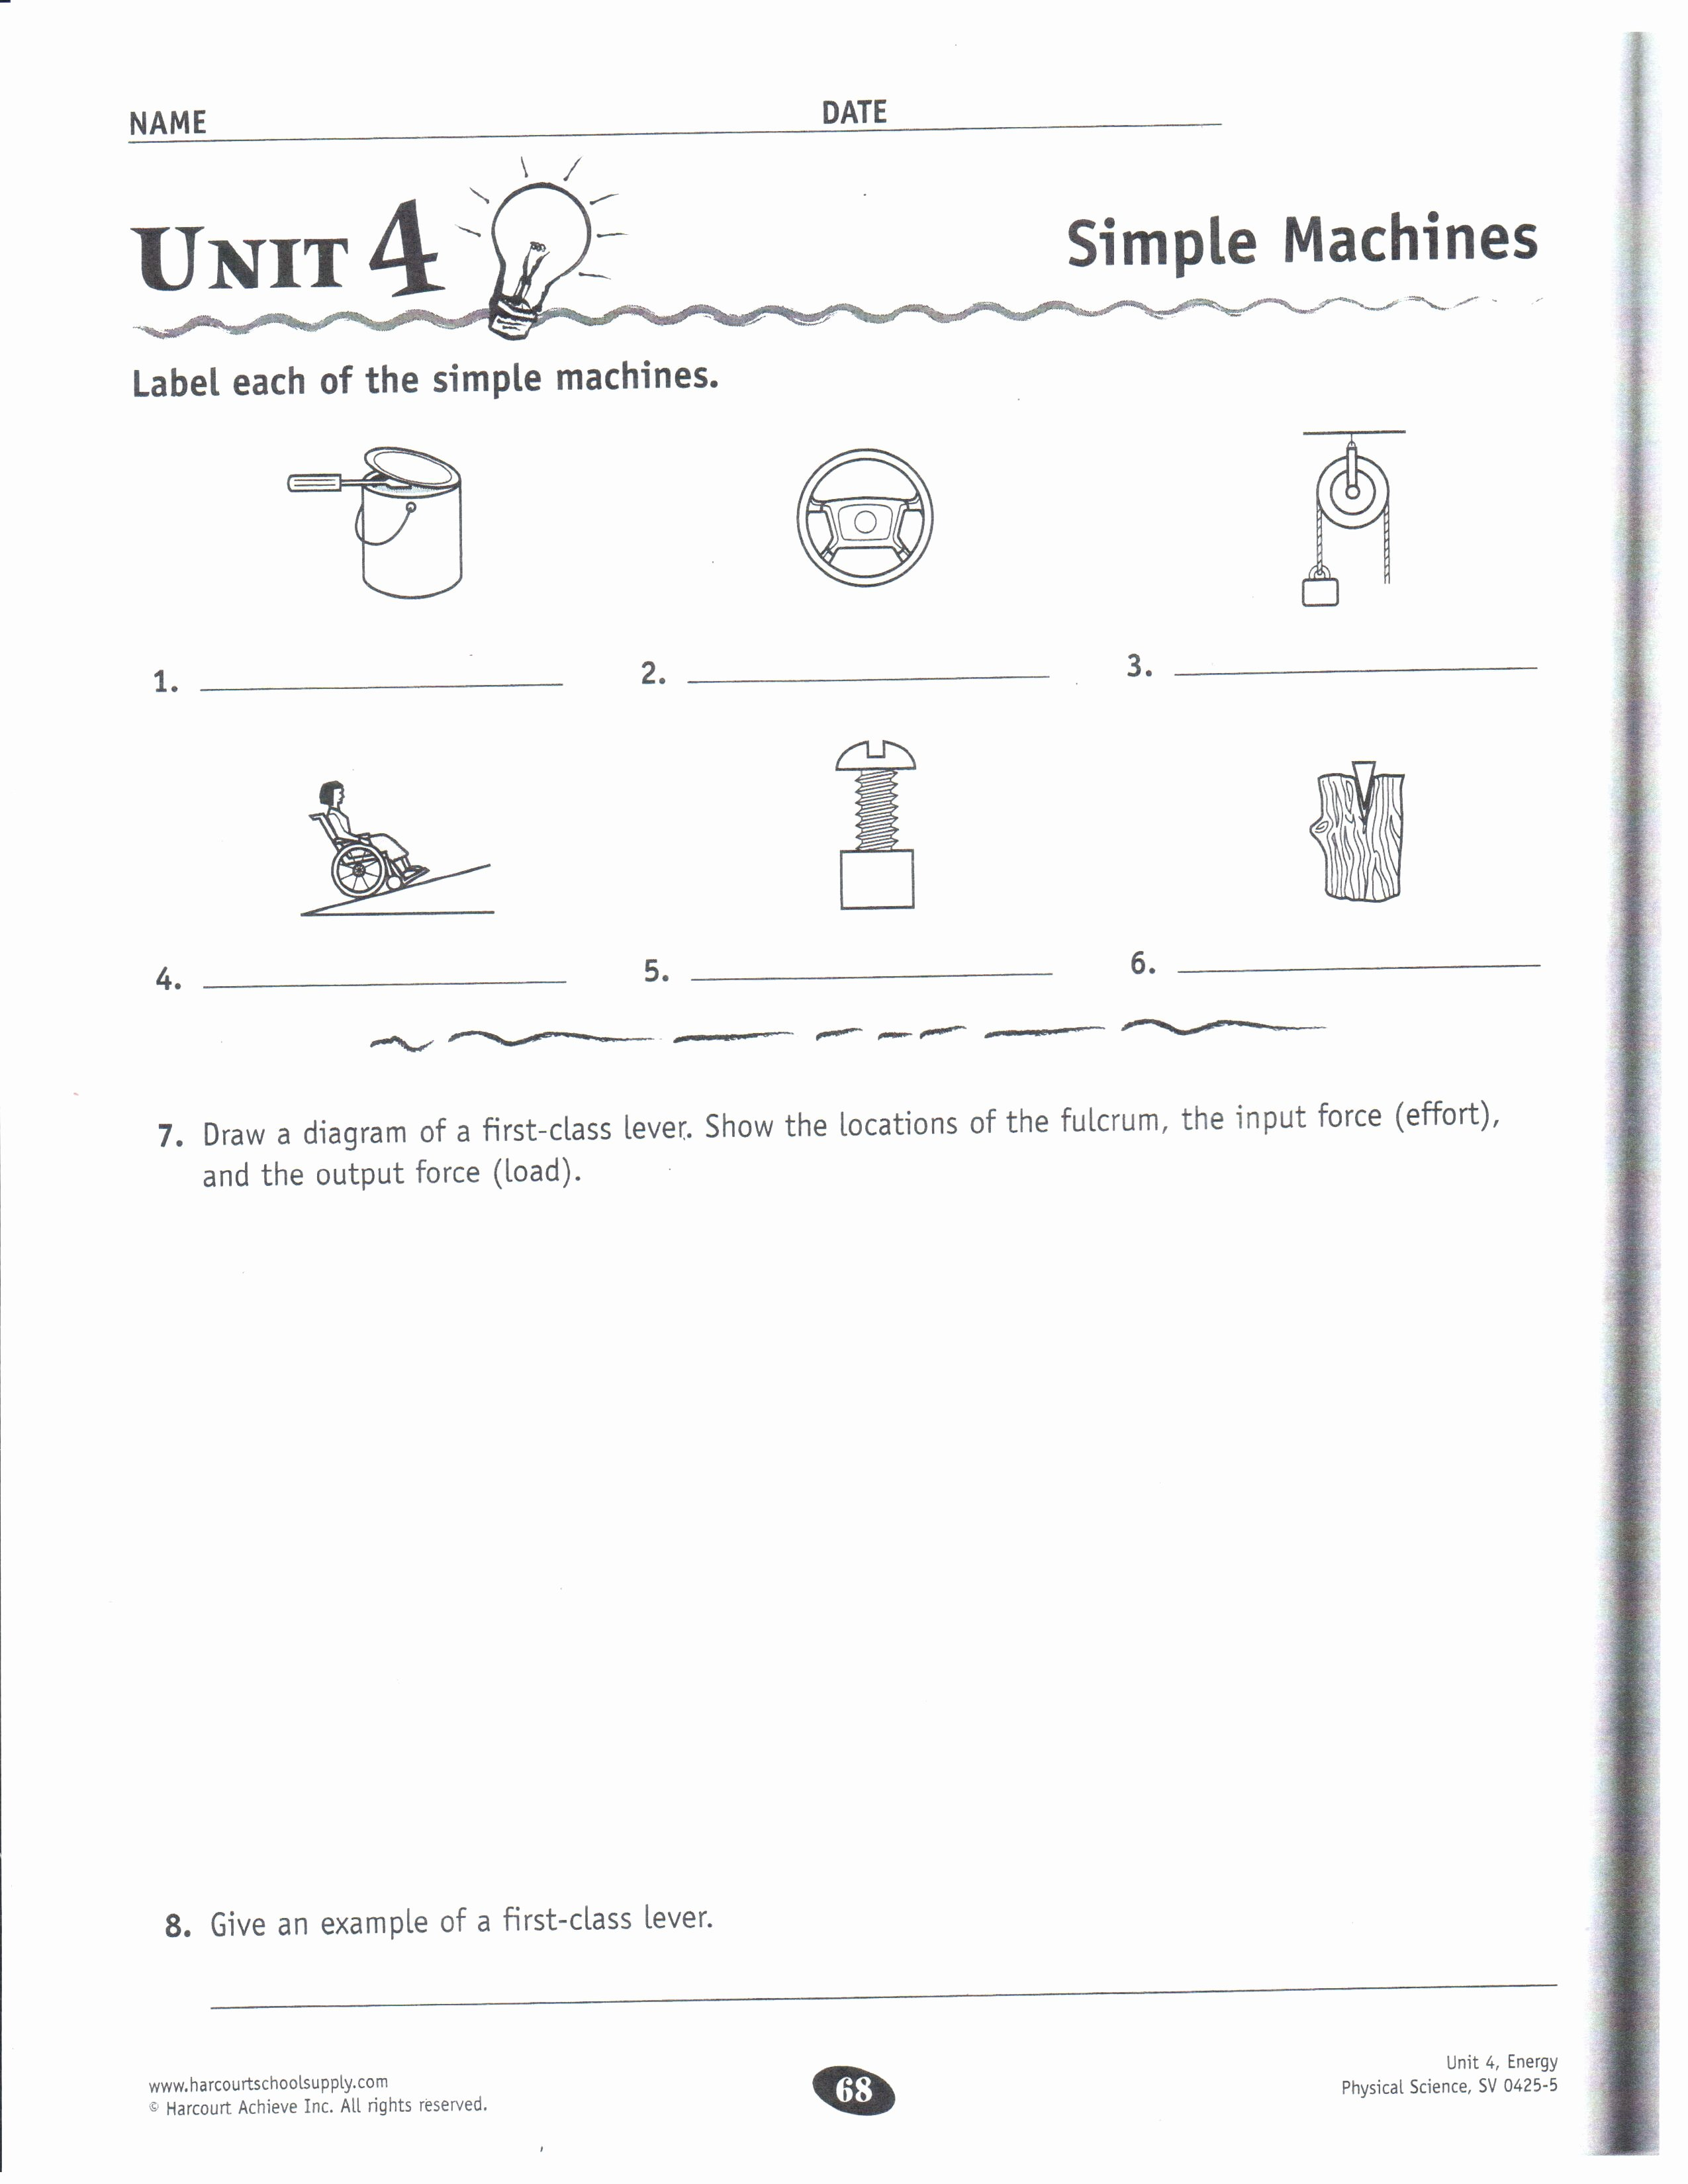 Simple Machines Worksheet Middle School Unique Physical Science Dec 10 14